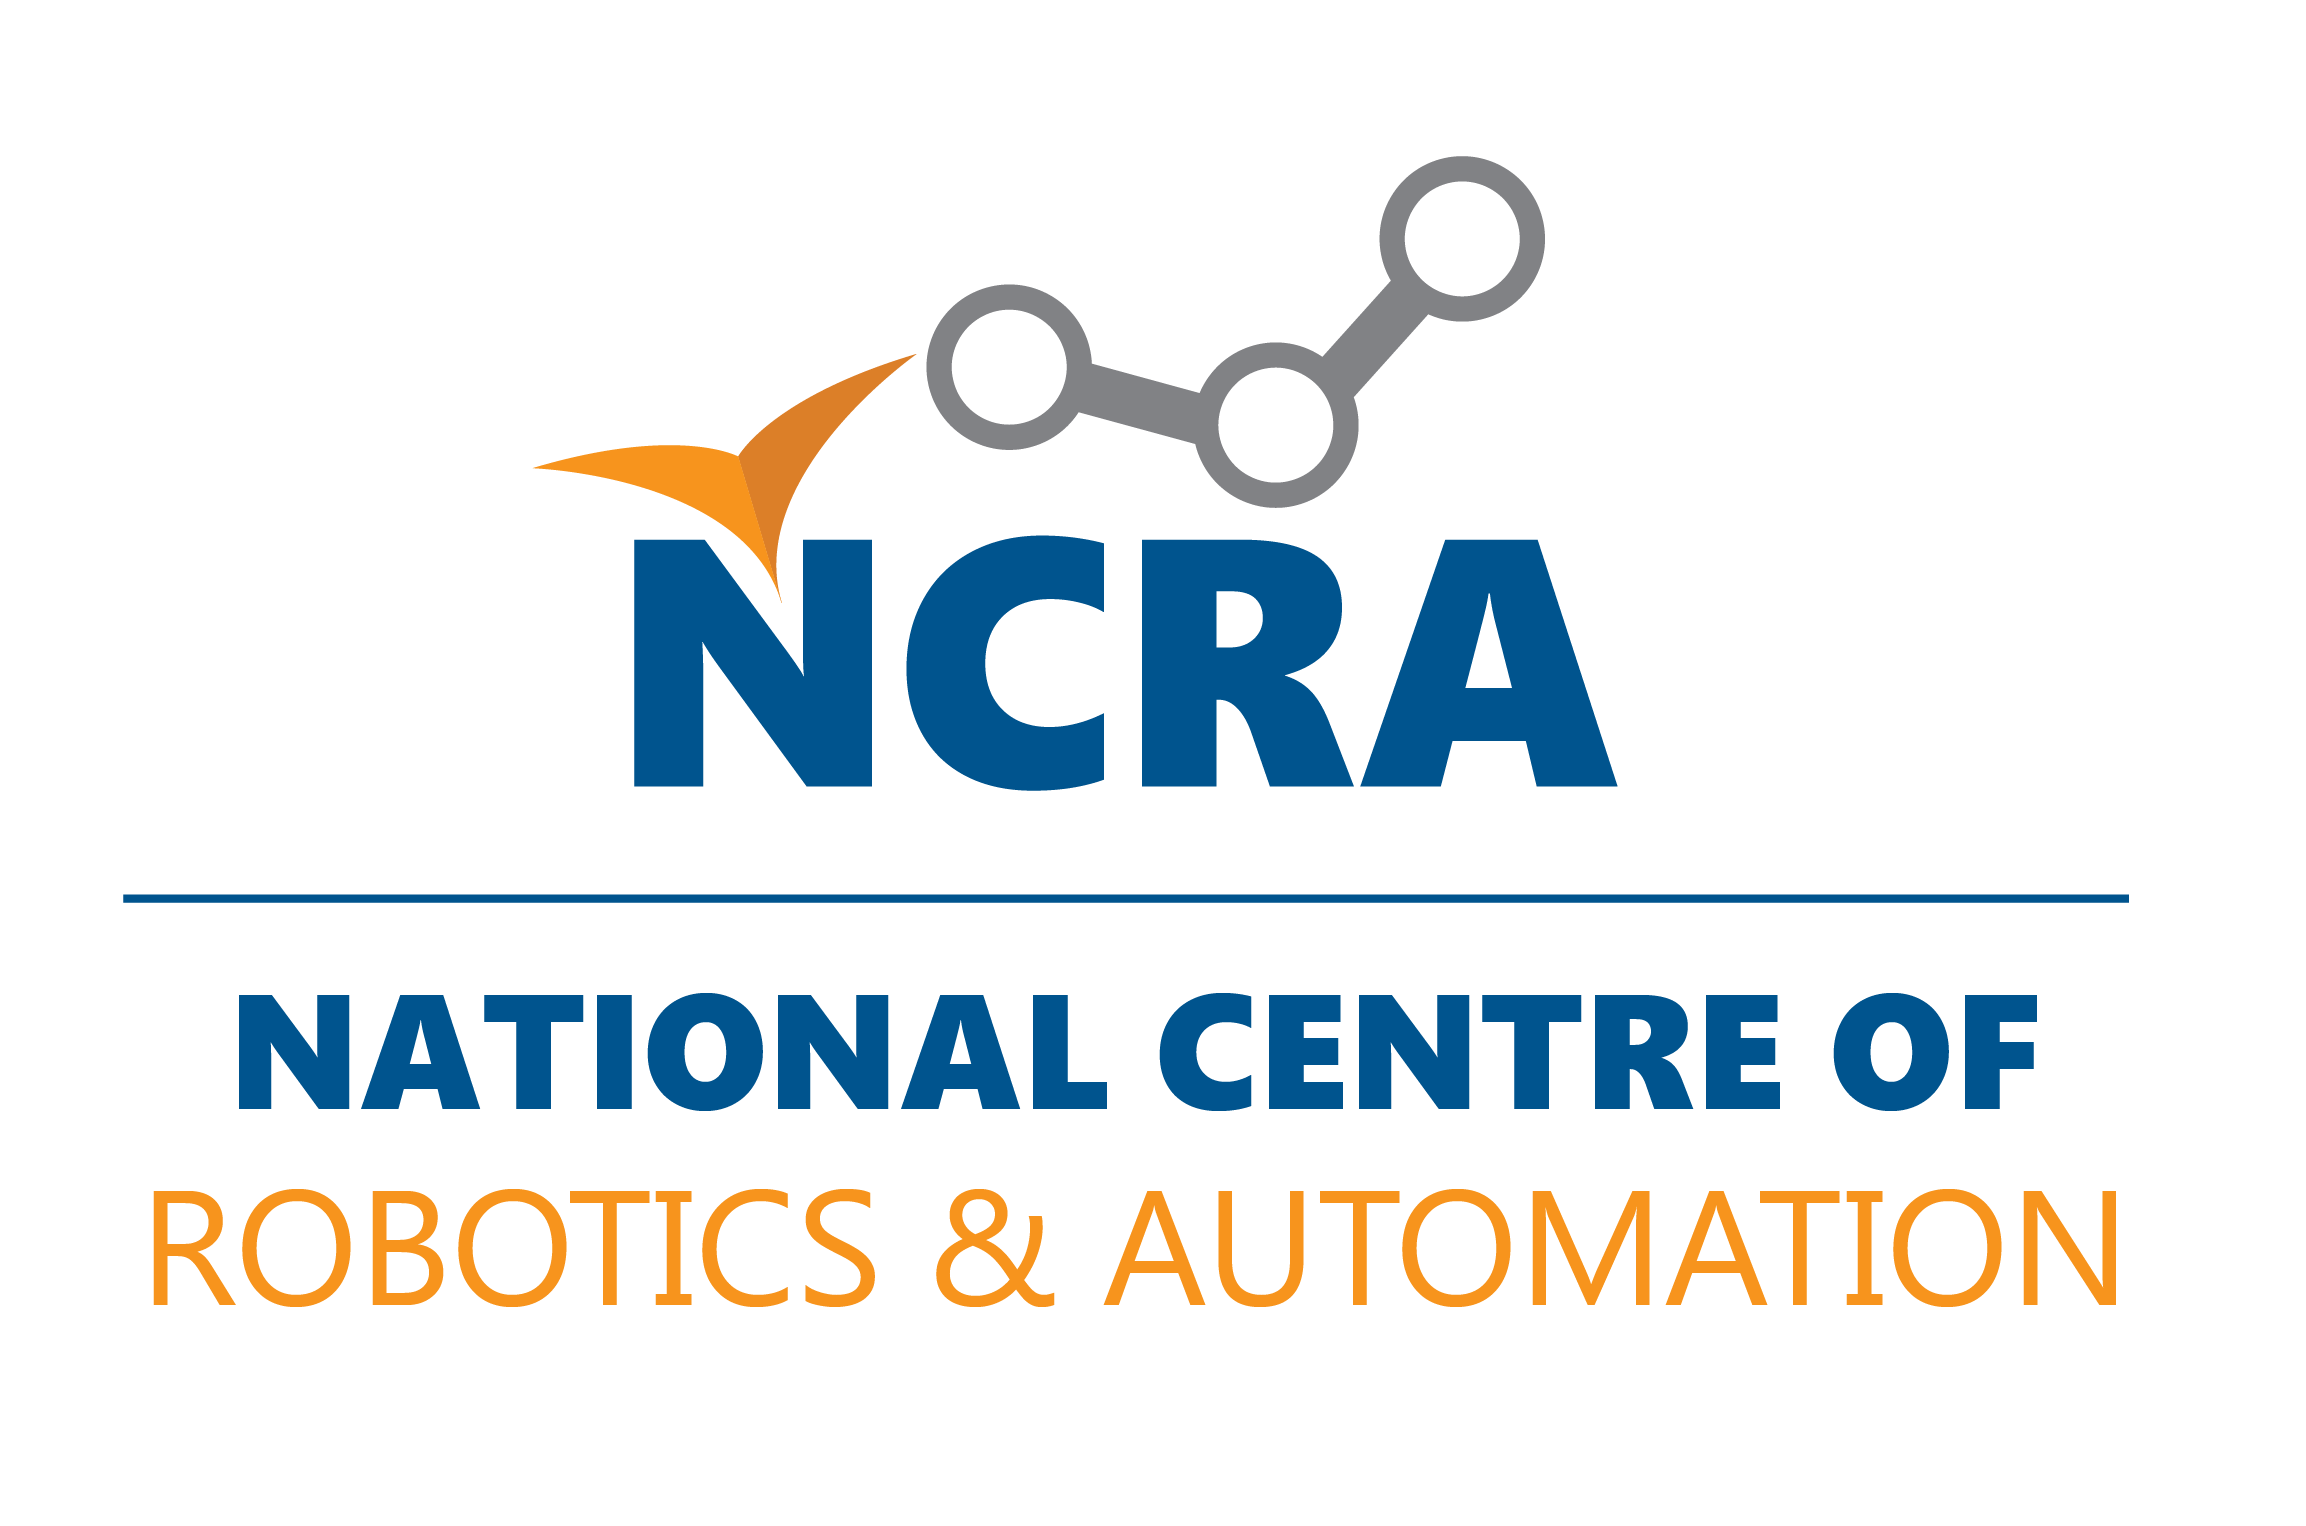 National Centre of Robotics and Automation